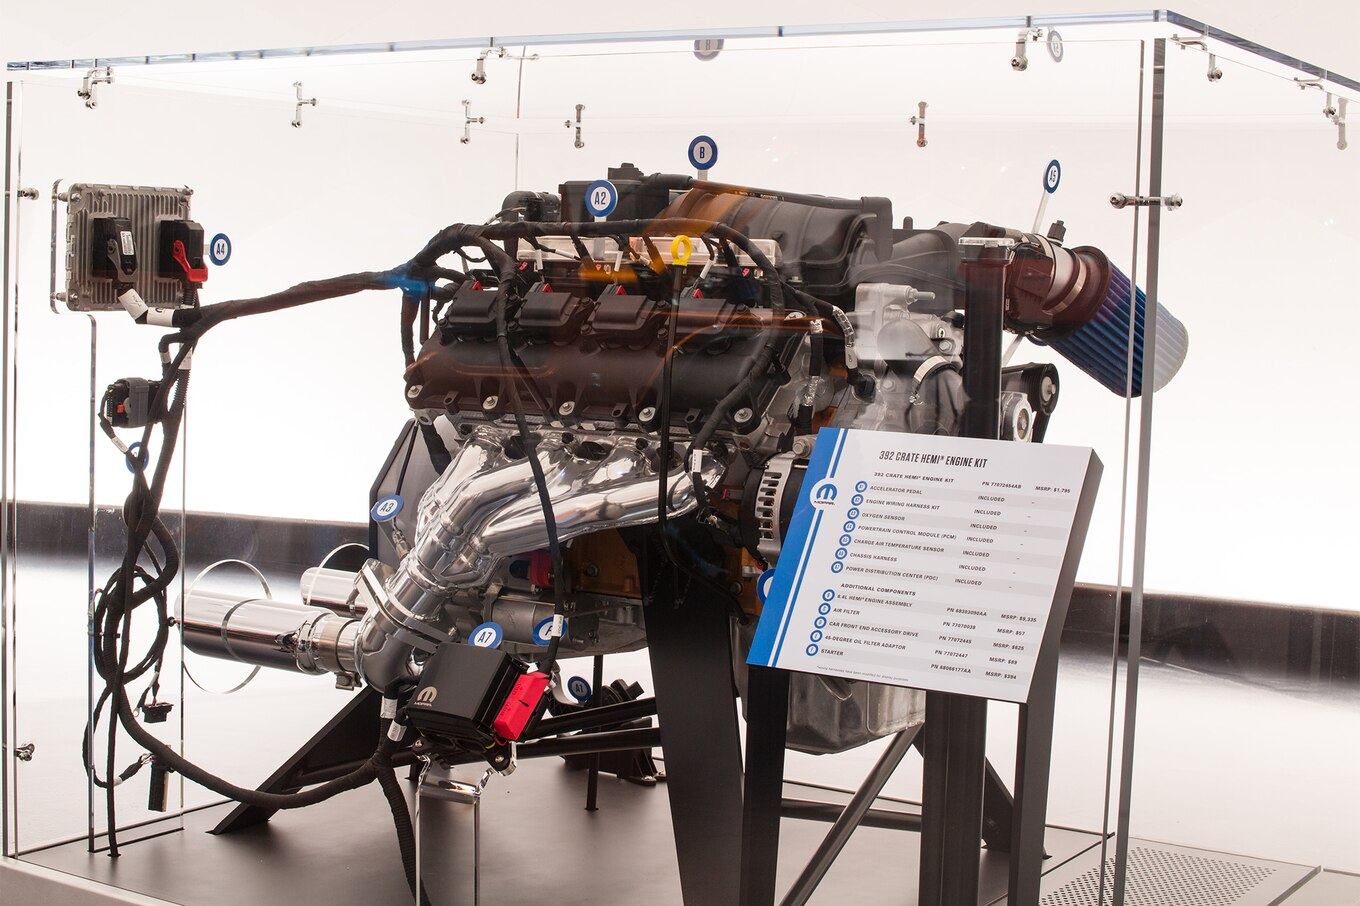 hight resolution of mopar launches modern v 8 crate engine kits for classic muscle cars motortrend